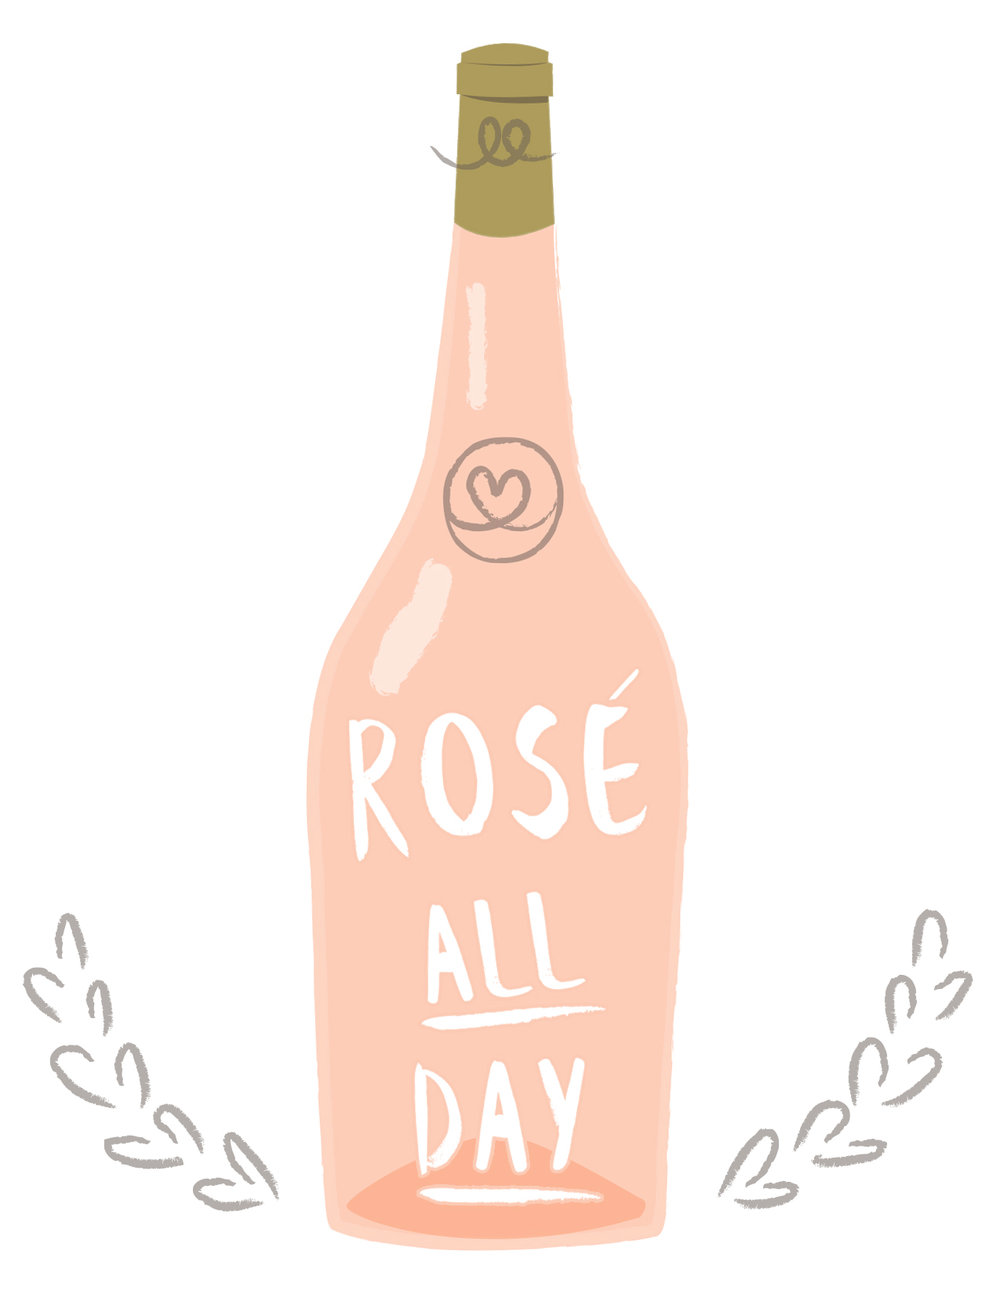 Rose All Day.jpg